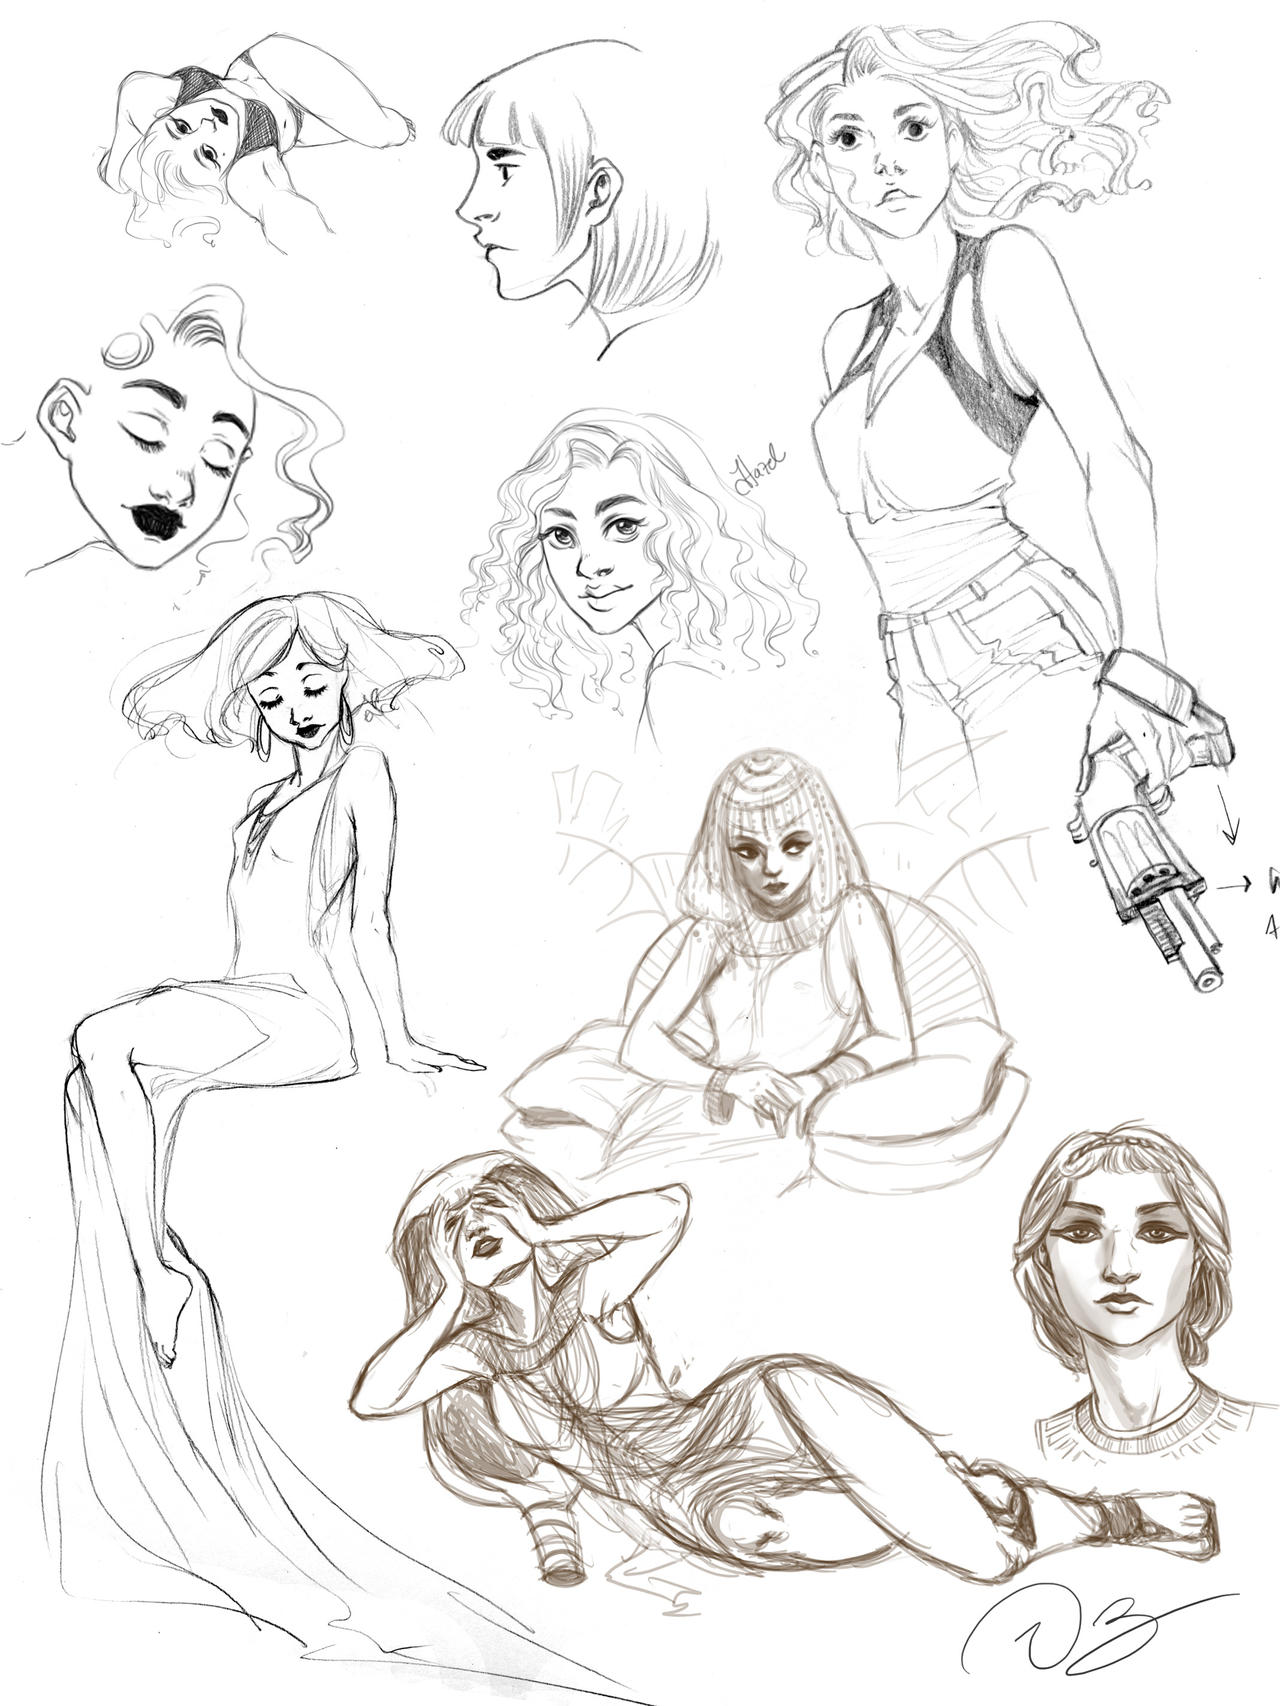 Somegirls sketches by palnk